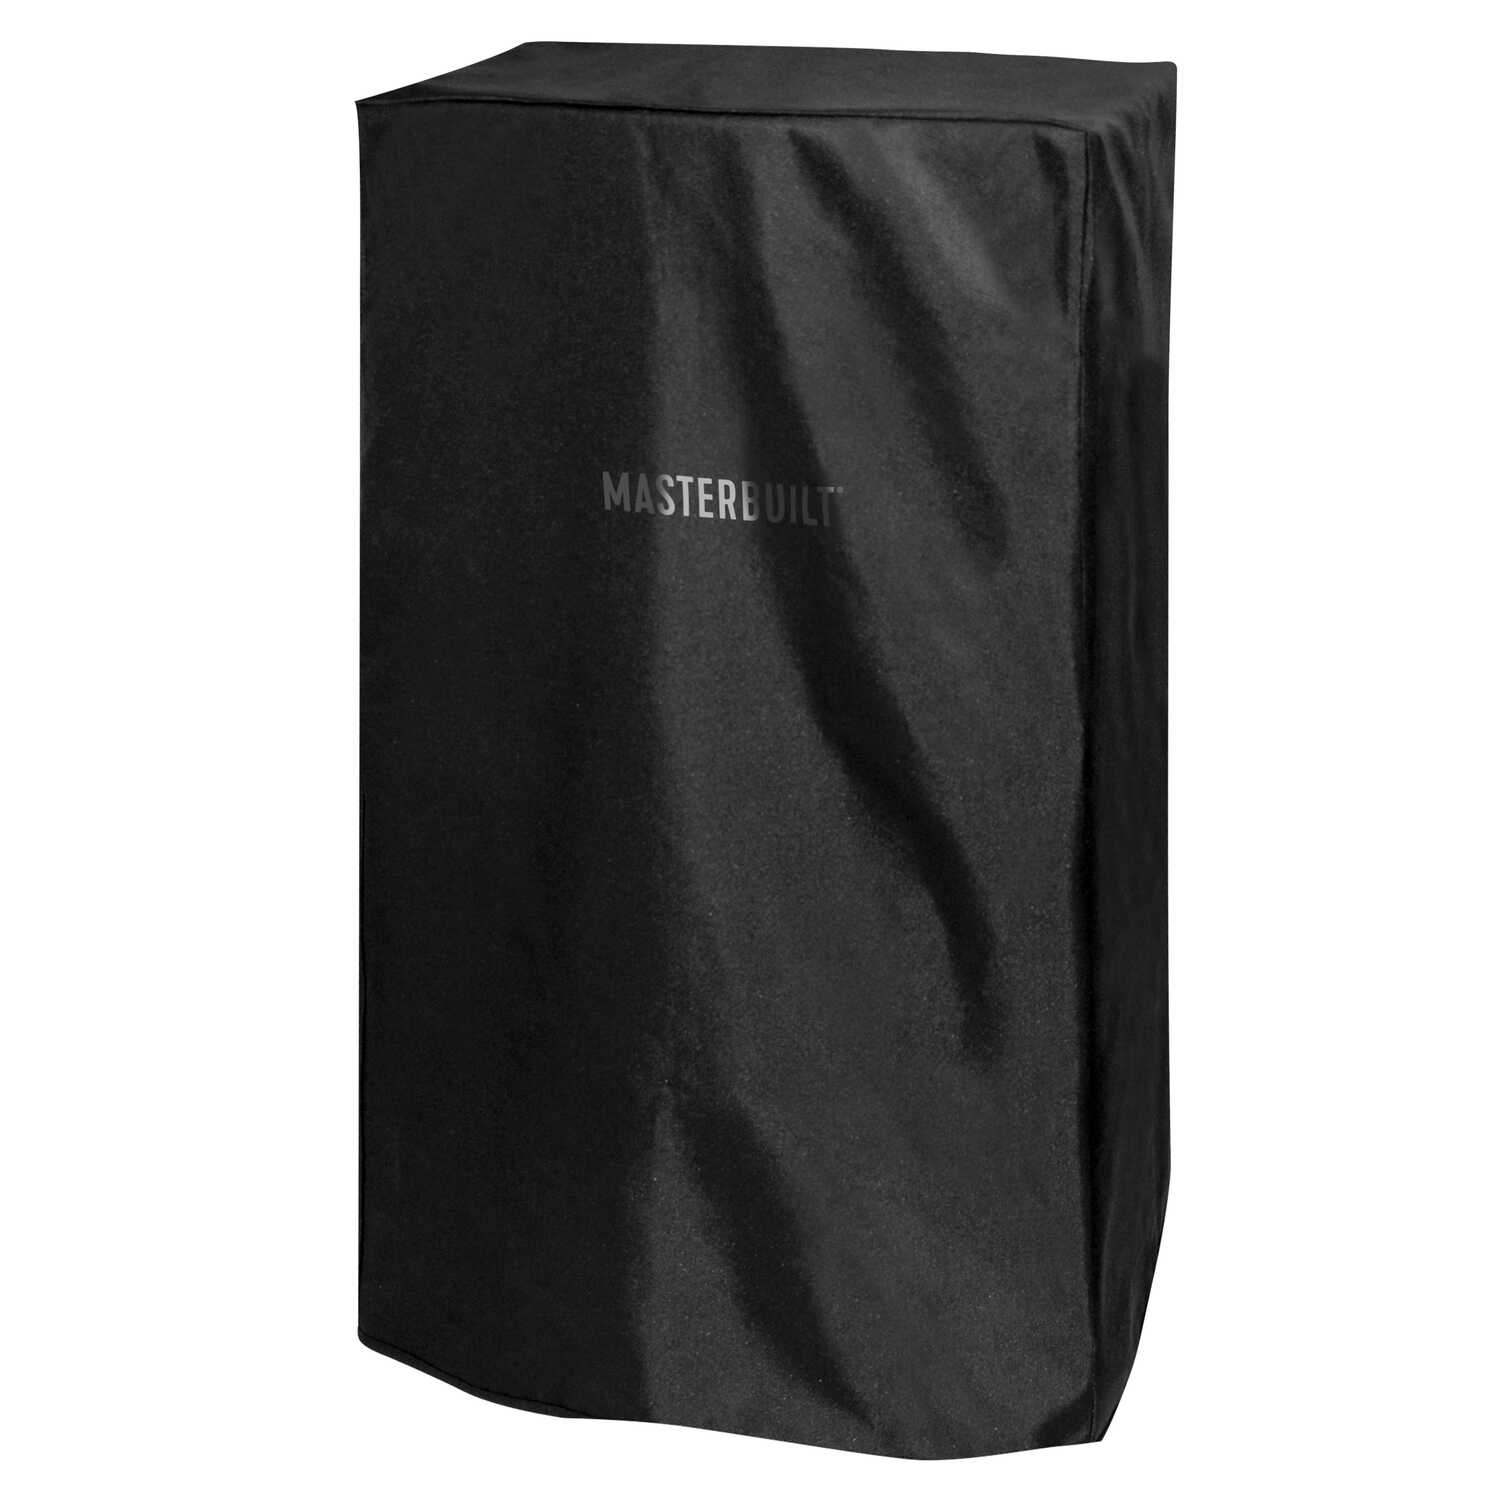 Masterbuilt  Black  Smoker Cover  24.6 in. W x 16.92 in. D x 38.6 in. H For 40 in. Electric Digital